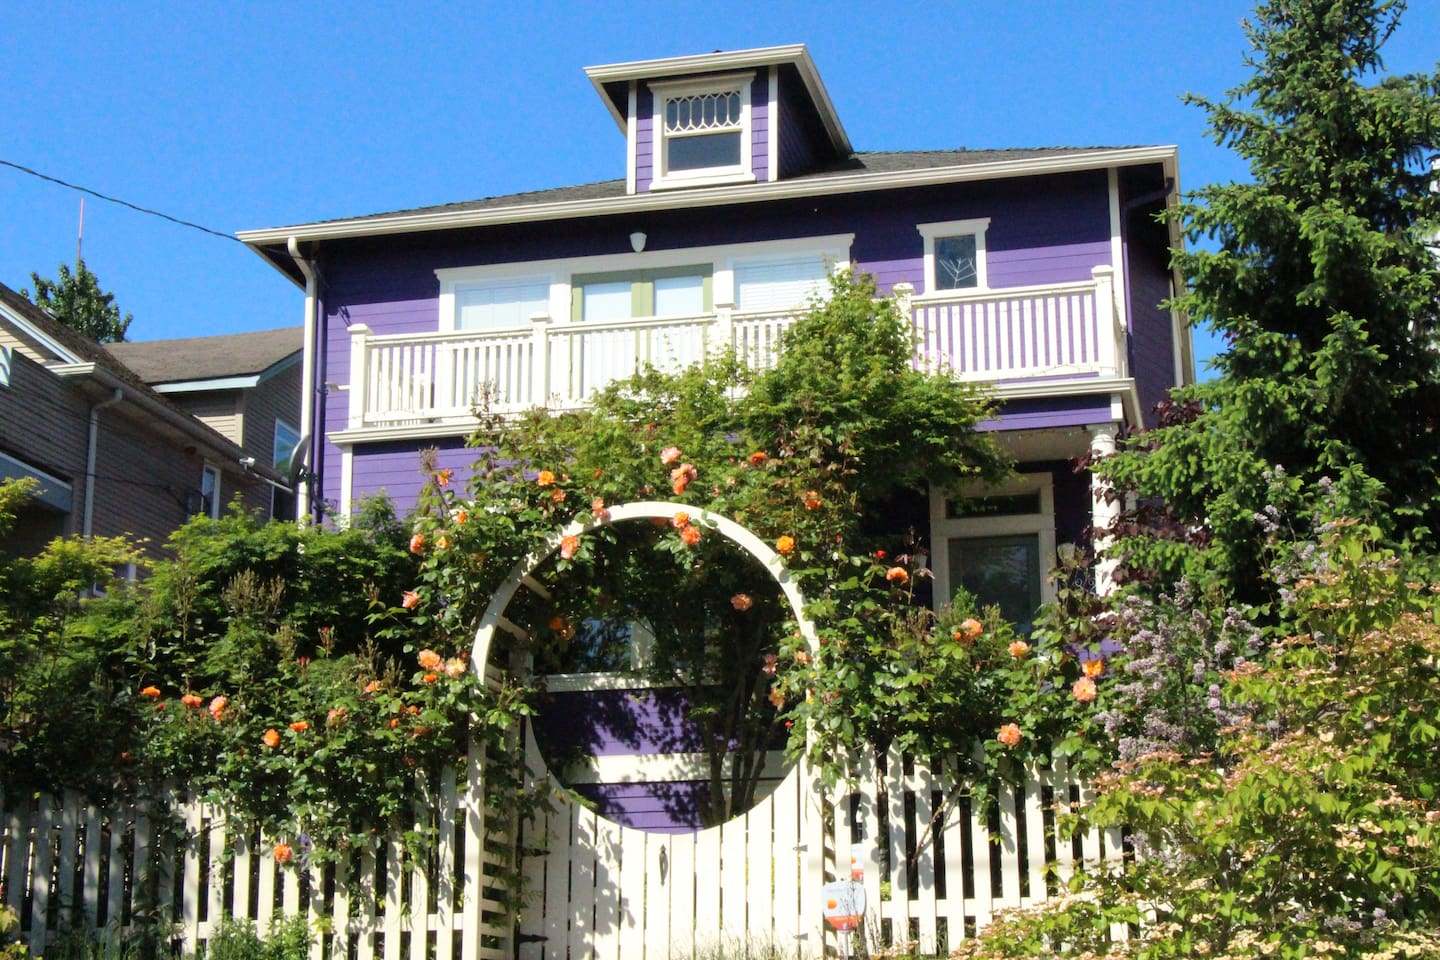 The Purple House front facade